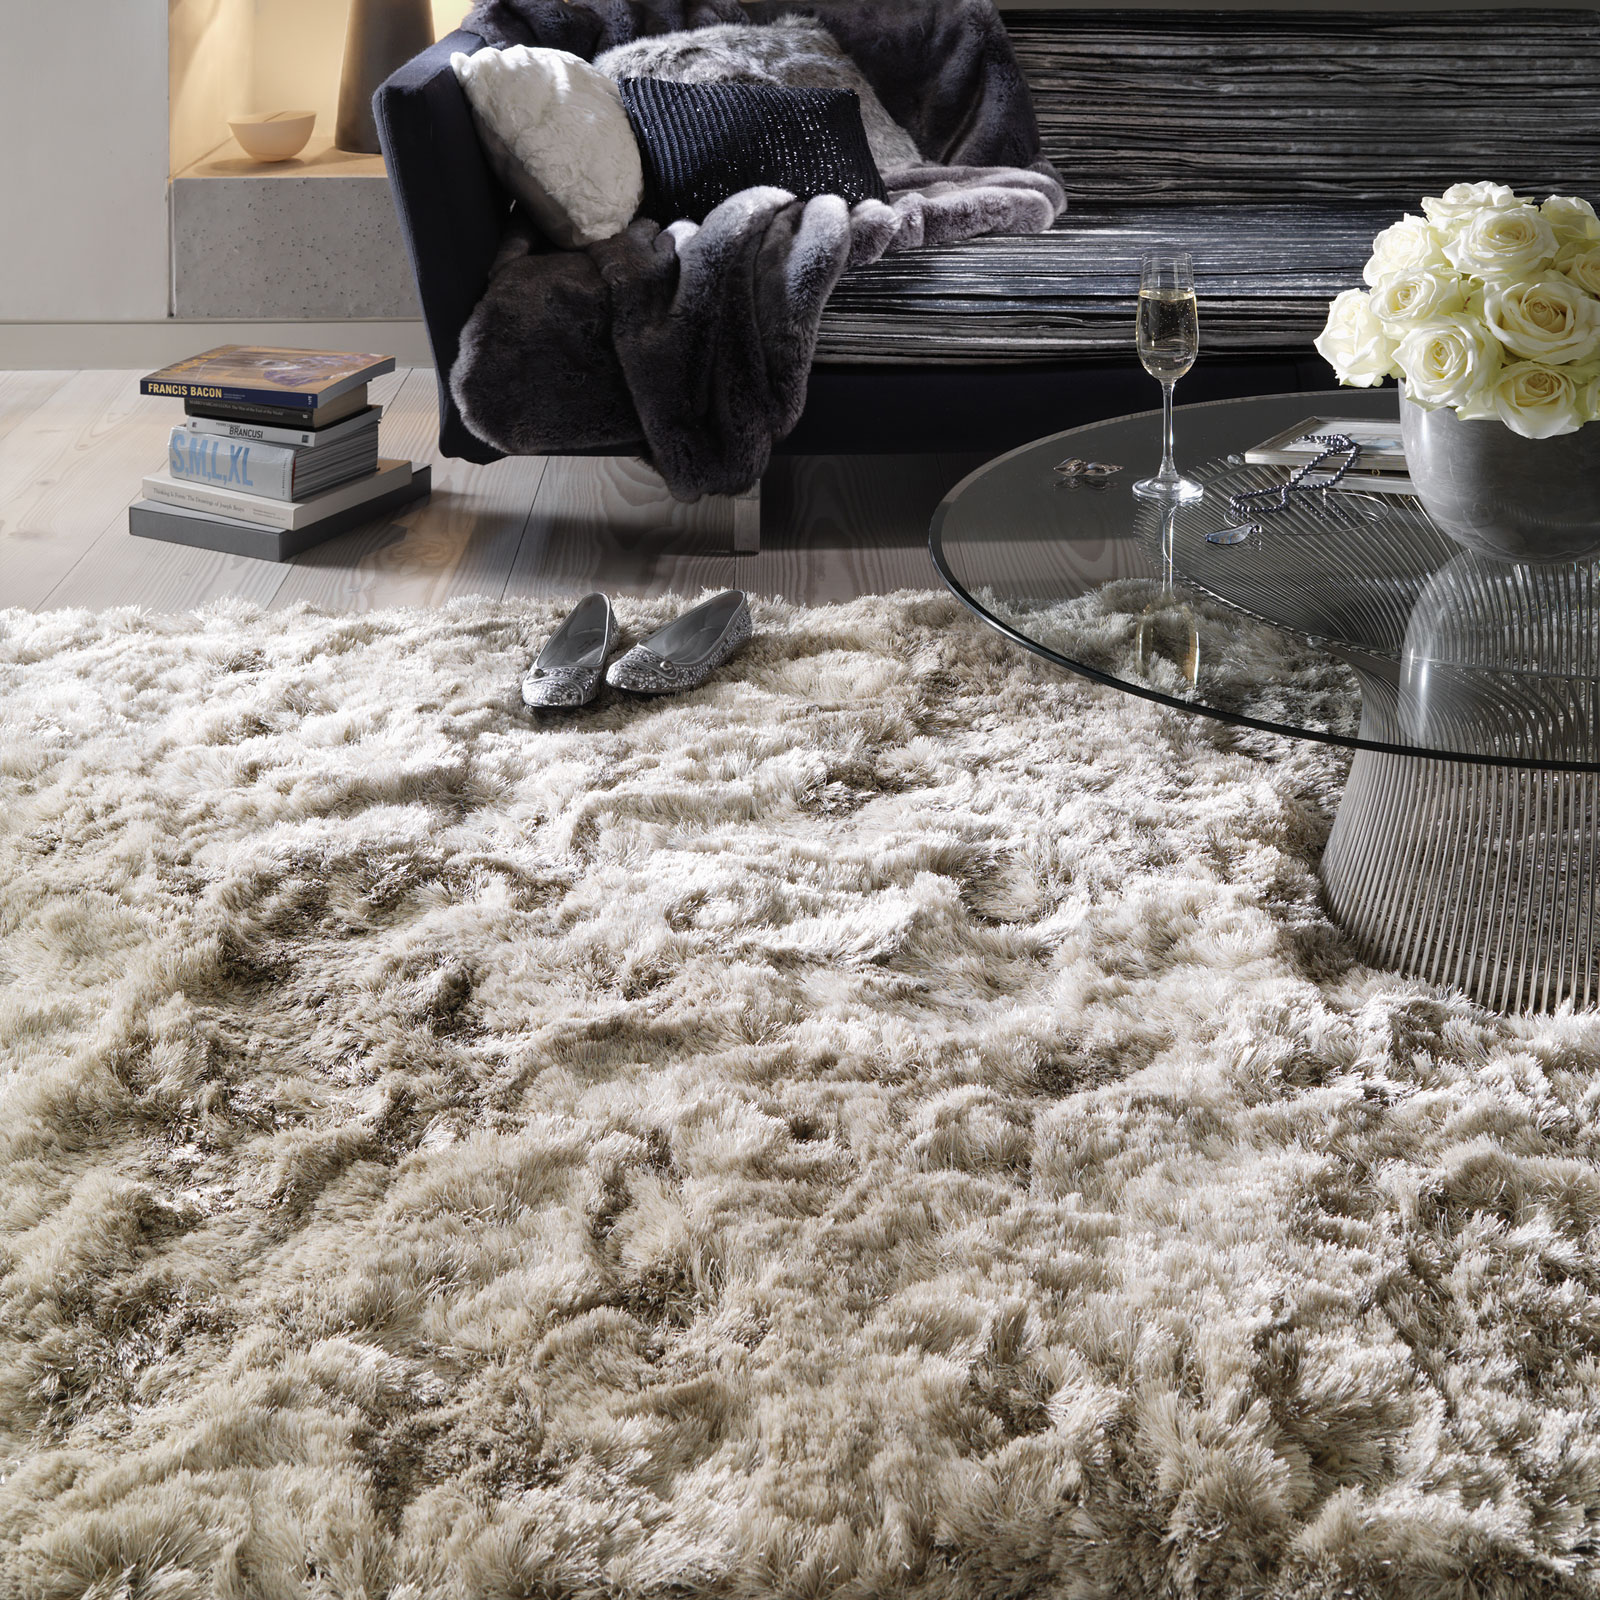 How To Clean Different Types Of Shaggy Rugs Imperial